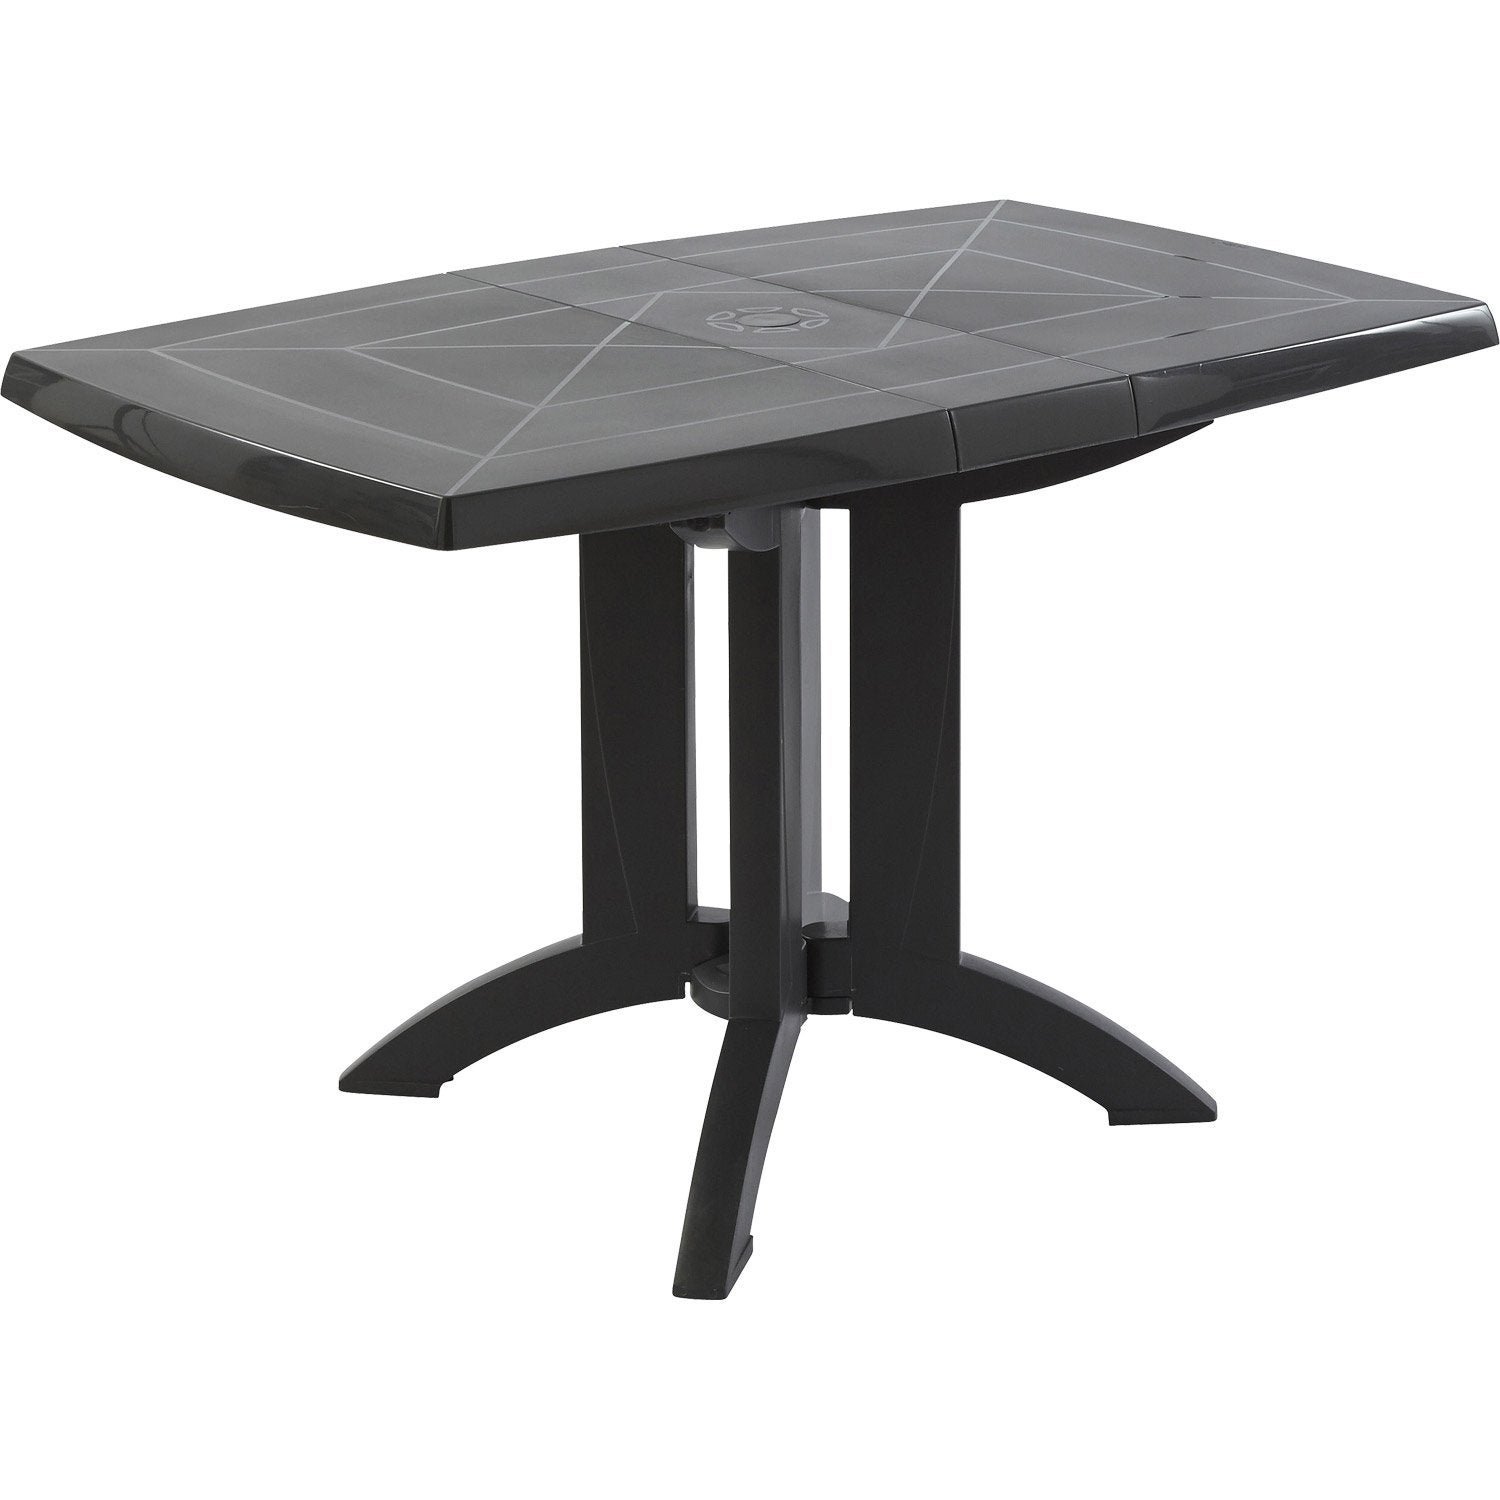 Table de jardin grosfillex v ga rectangulaire anthracite 4 for Table de jardin pliante plastique